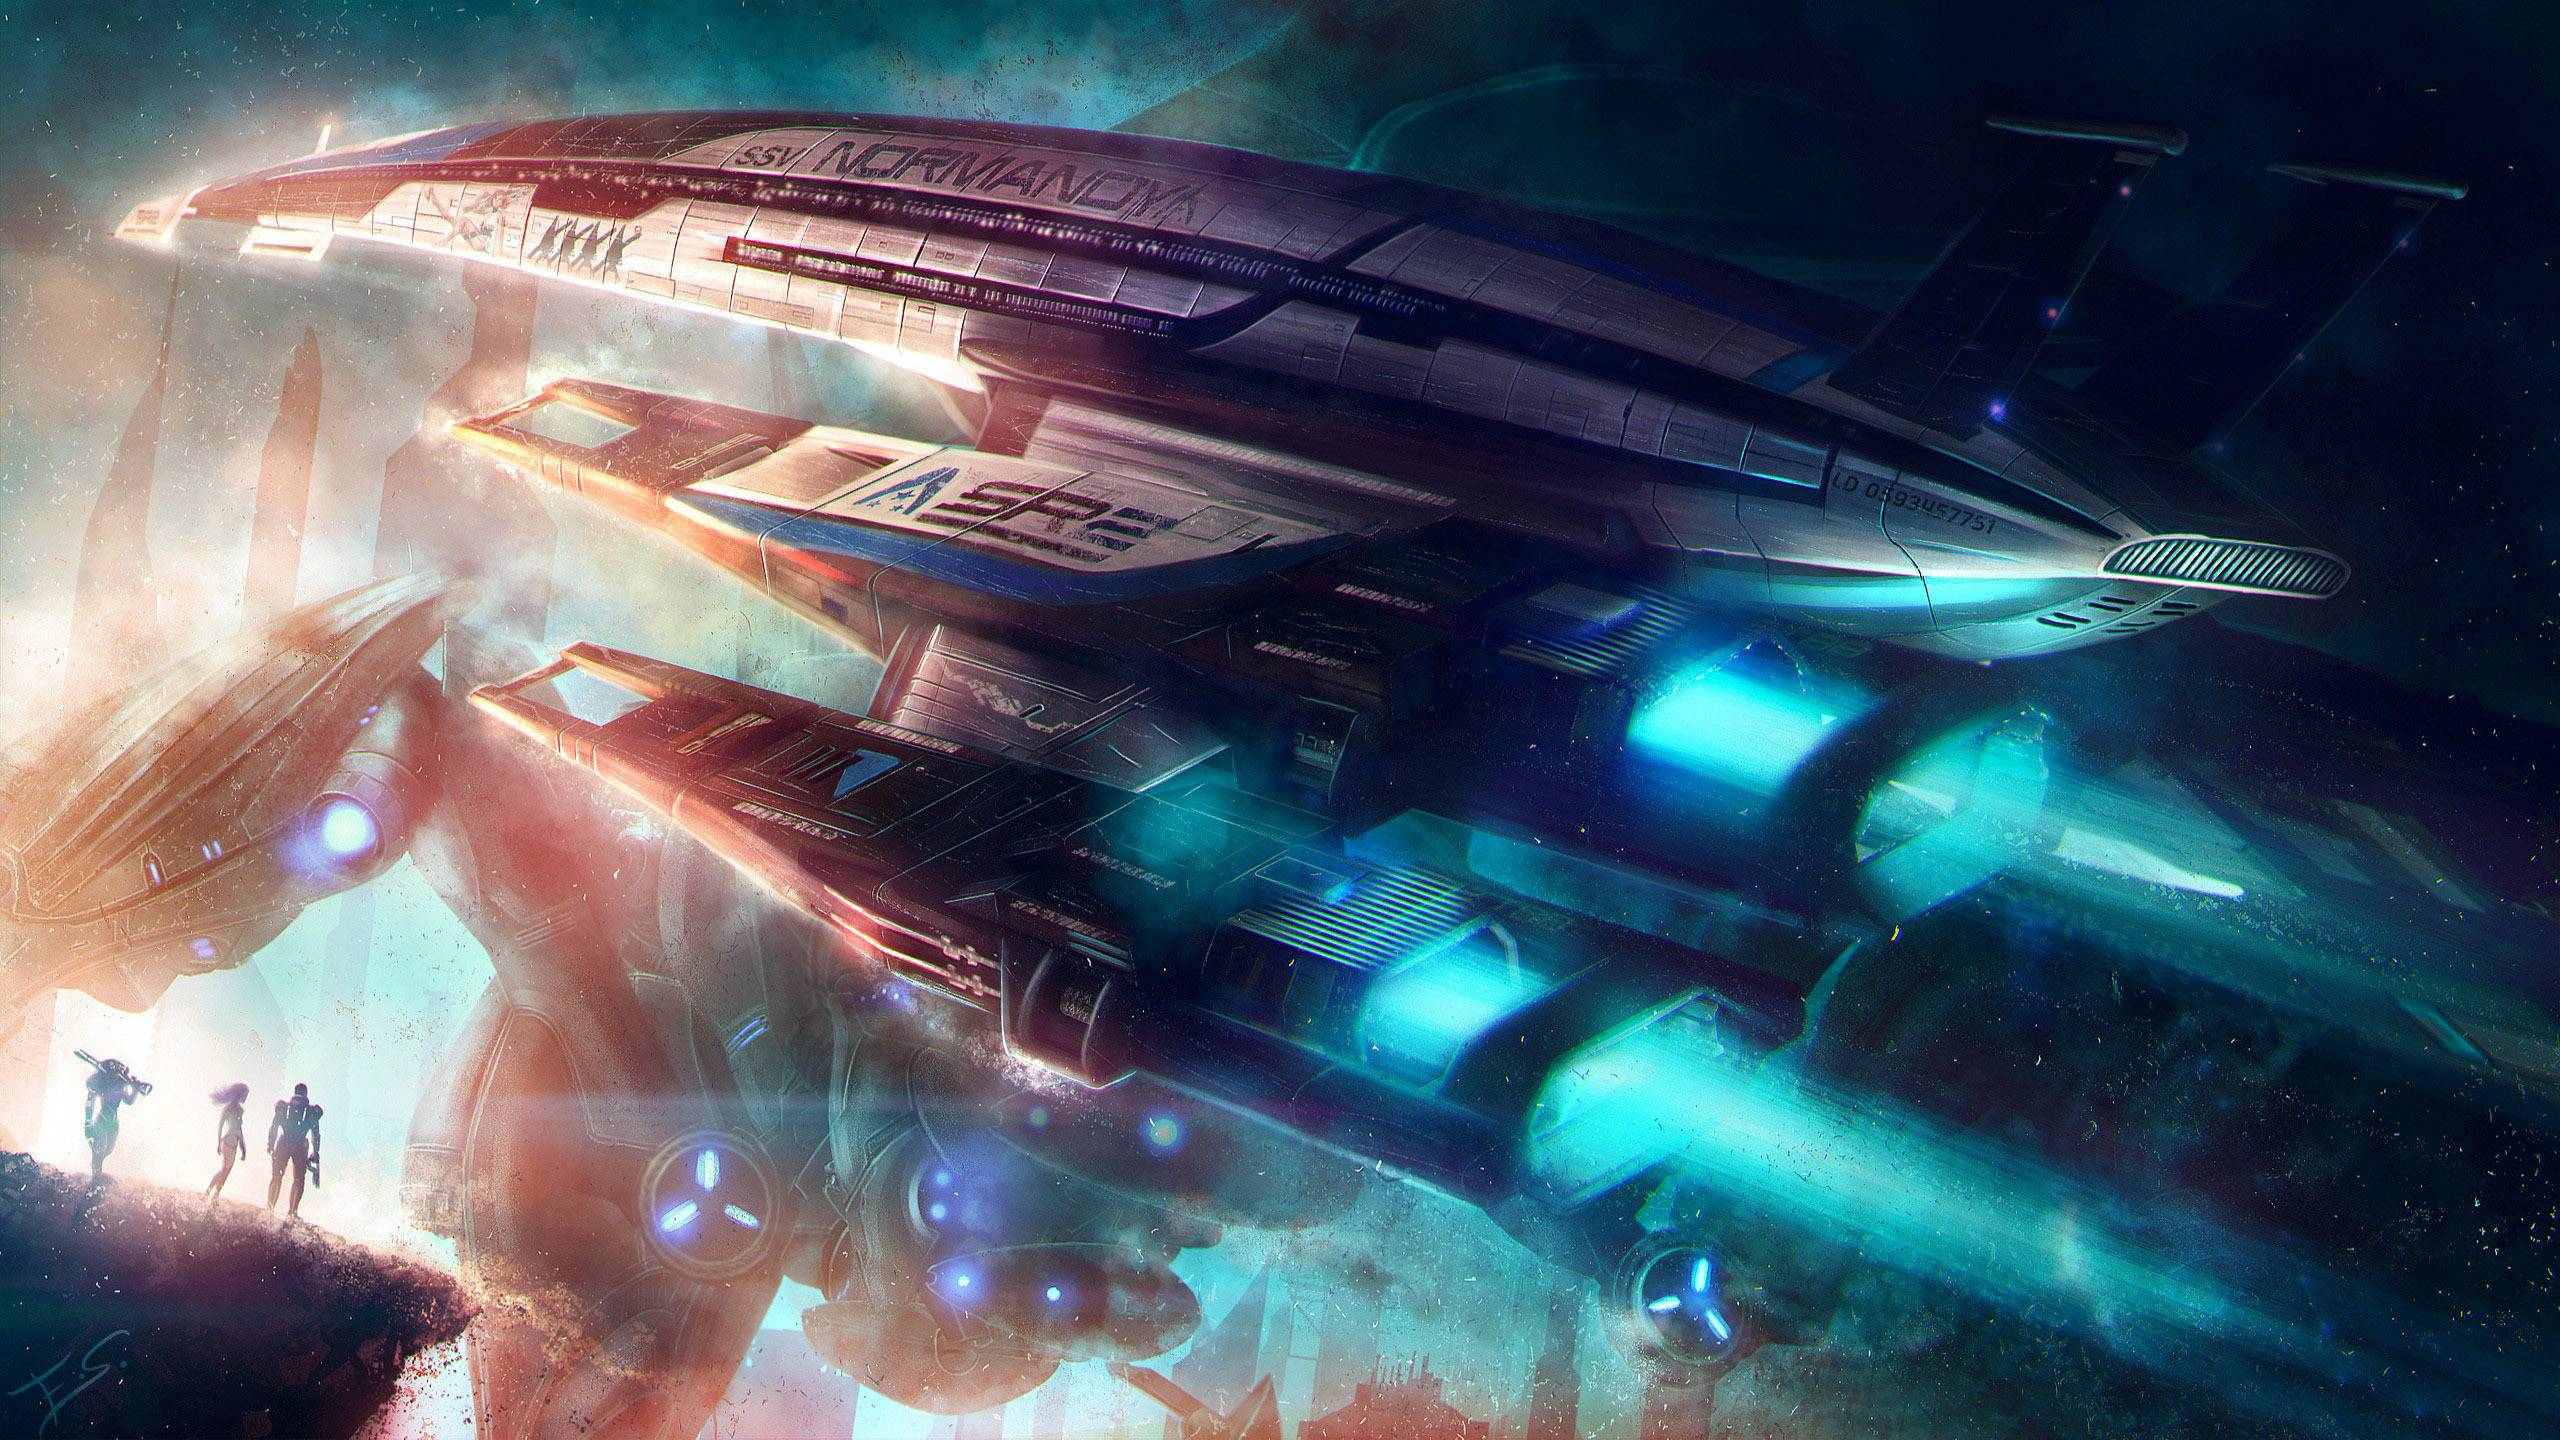 Mass Effect Normandy Wallpapers Wallpaper Cave